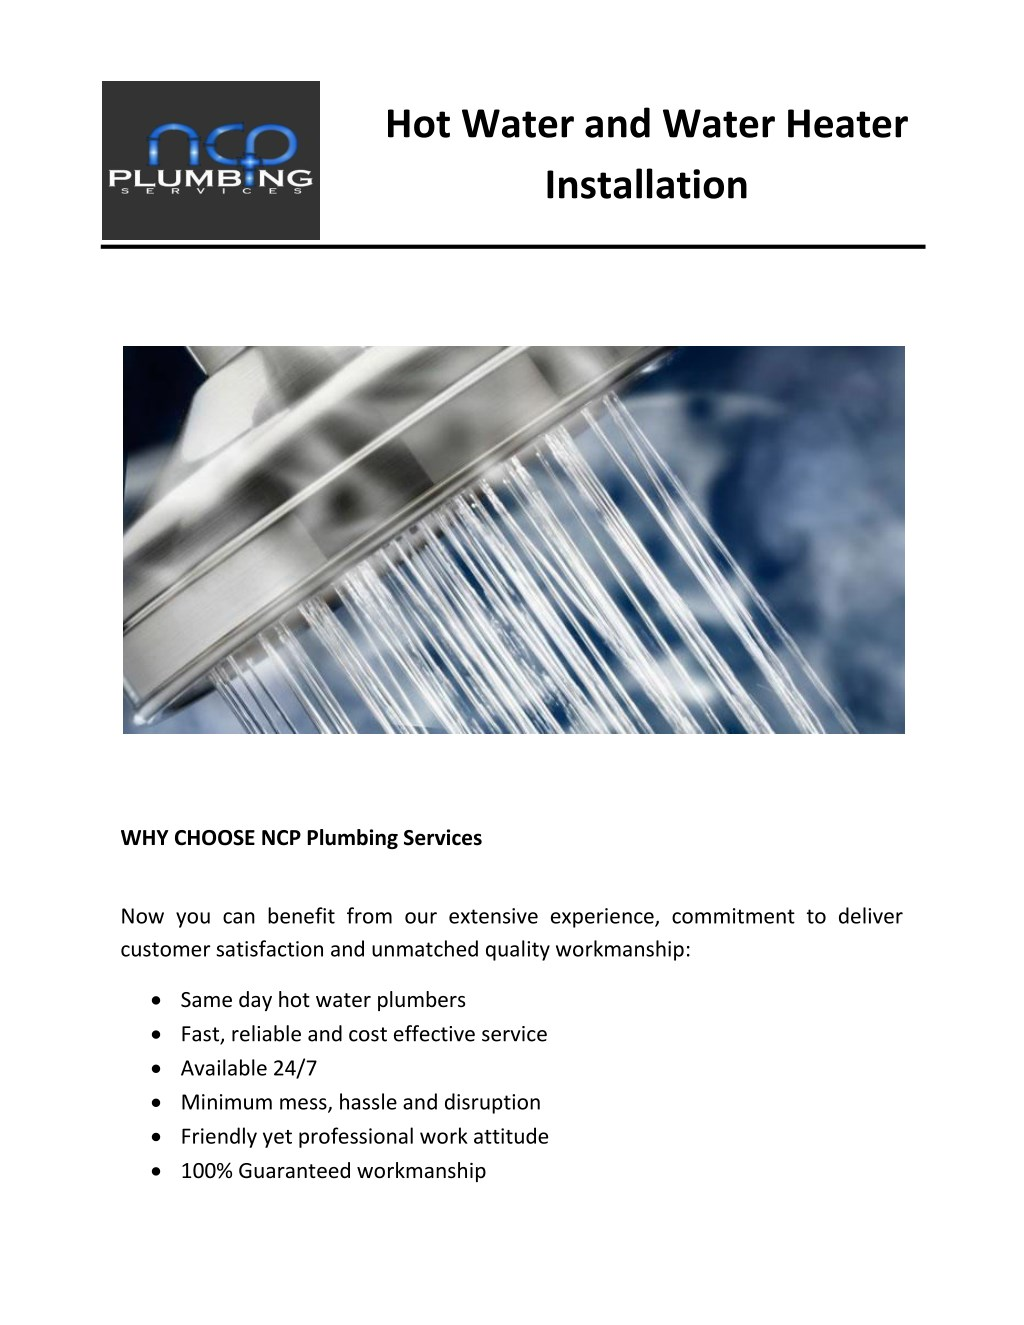 PPT - Hot Water and Water Heater Installation PowerPoint